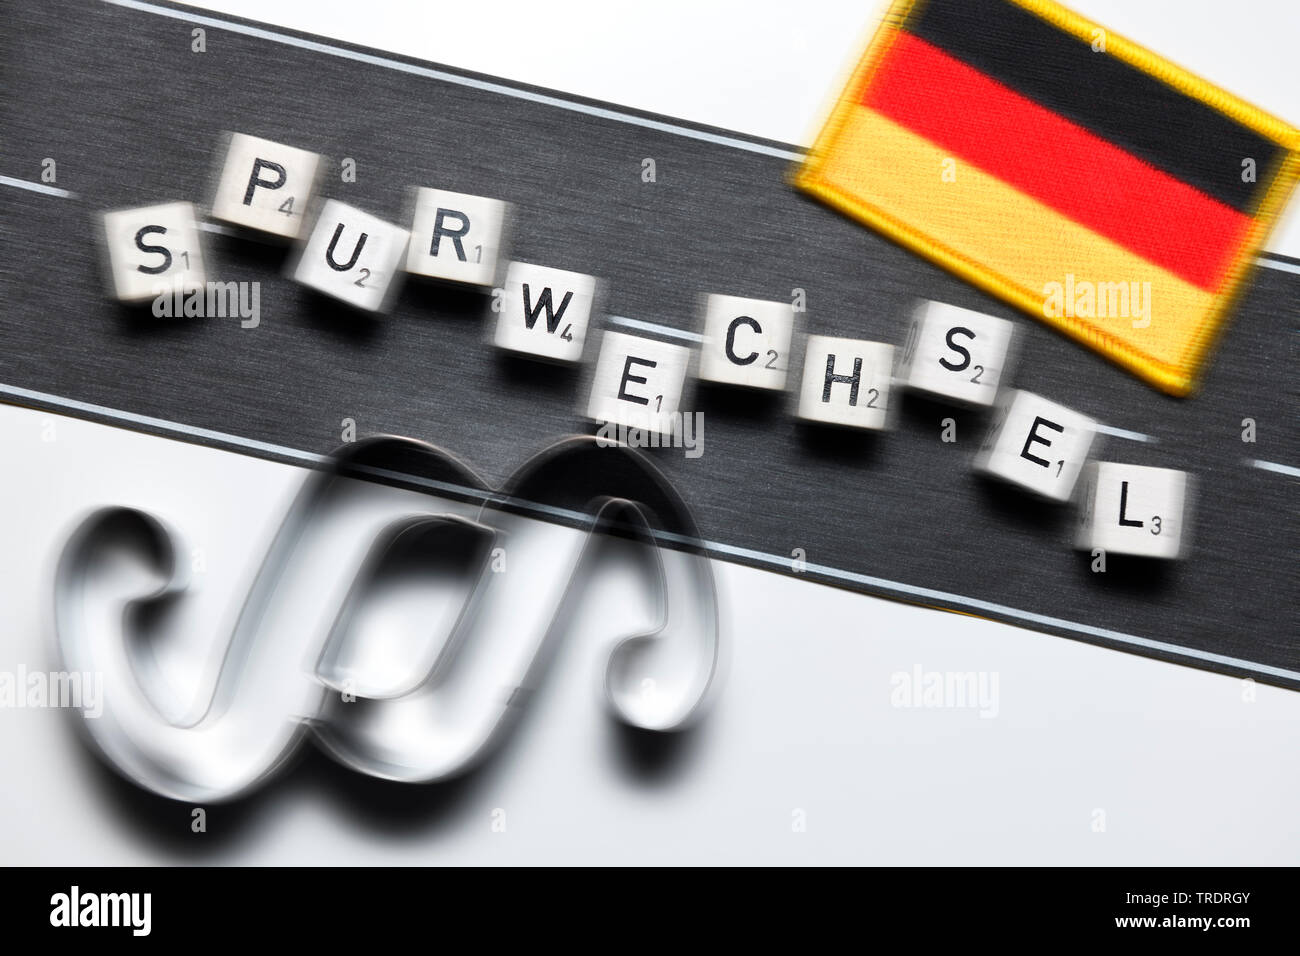 lane change, Spurwechsel, asyl, Germany - Stock Image